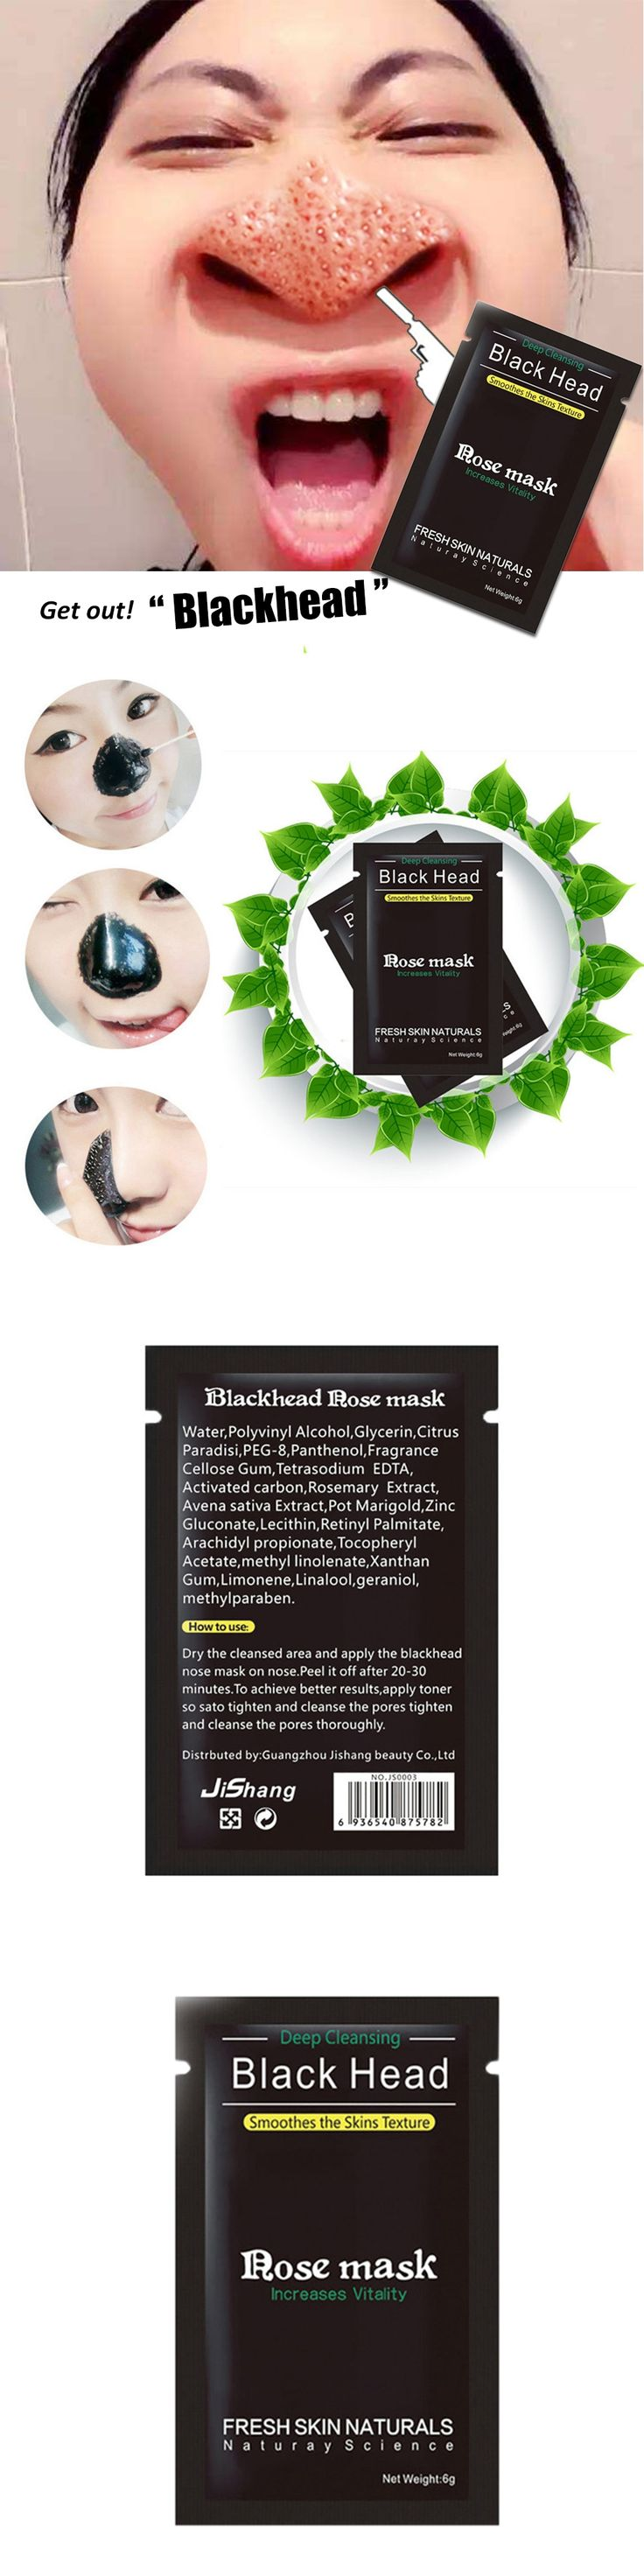 Black Head Acne Treatments Cream Face Care Suction Mask Nose Blackhead Remover Peeling Peel Off Facial Mask Cleansing